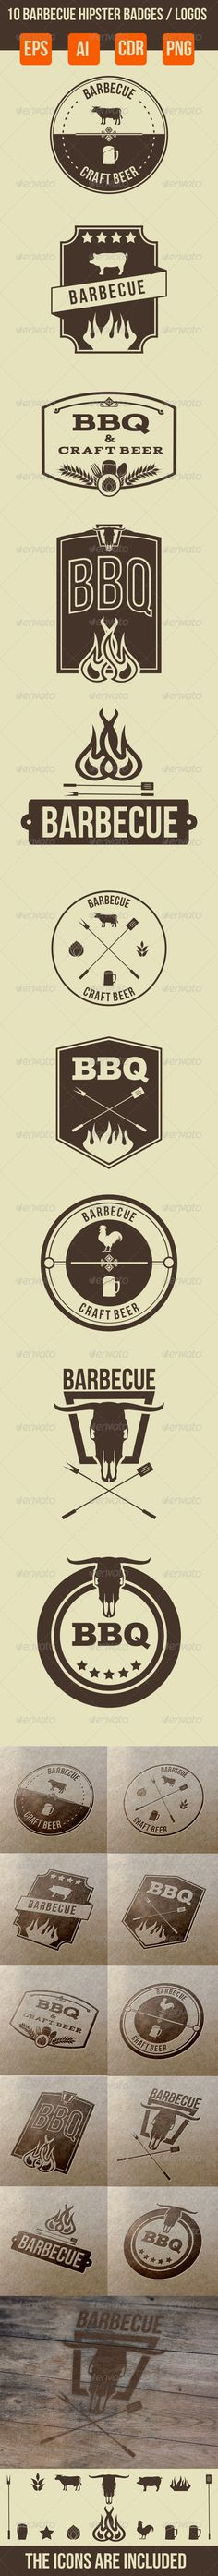 10 Barbecue Hipster Emblems For download - http://graphicriver.net/item/10-barbecue-hipster-emblems/6697371?WT.ac=portfolio&WT.z_author=ragerabbit